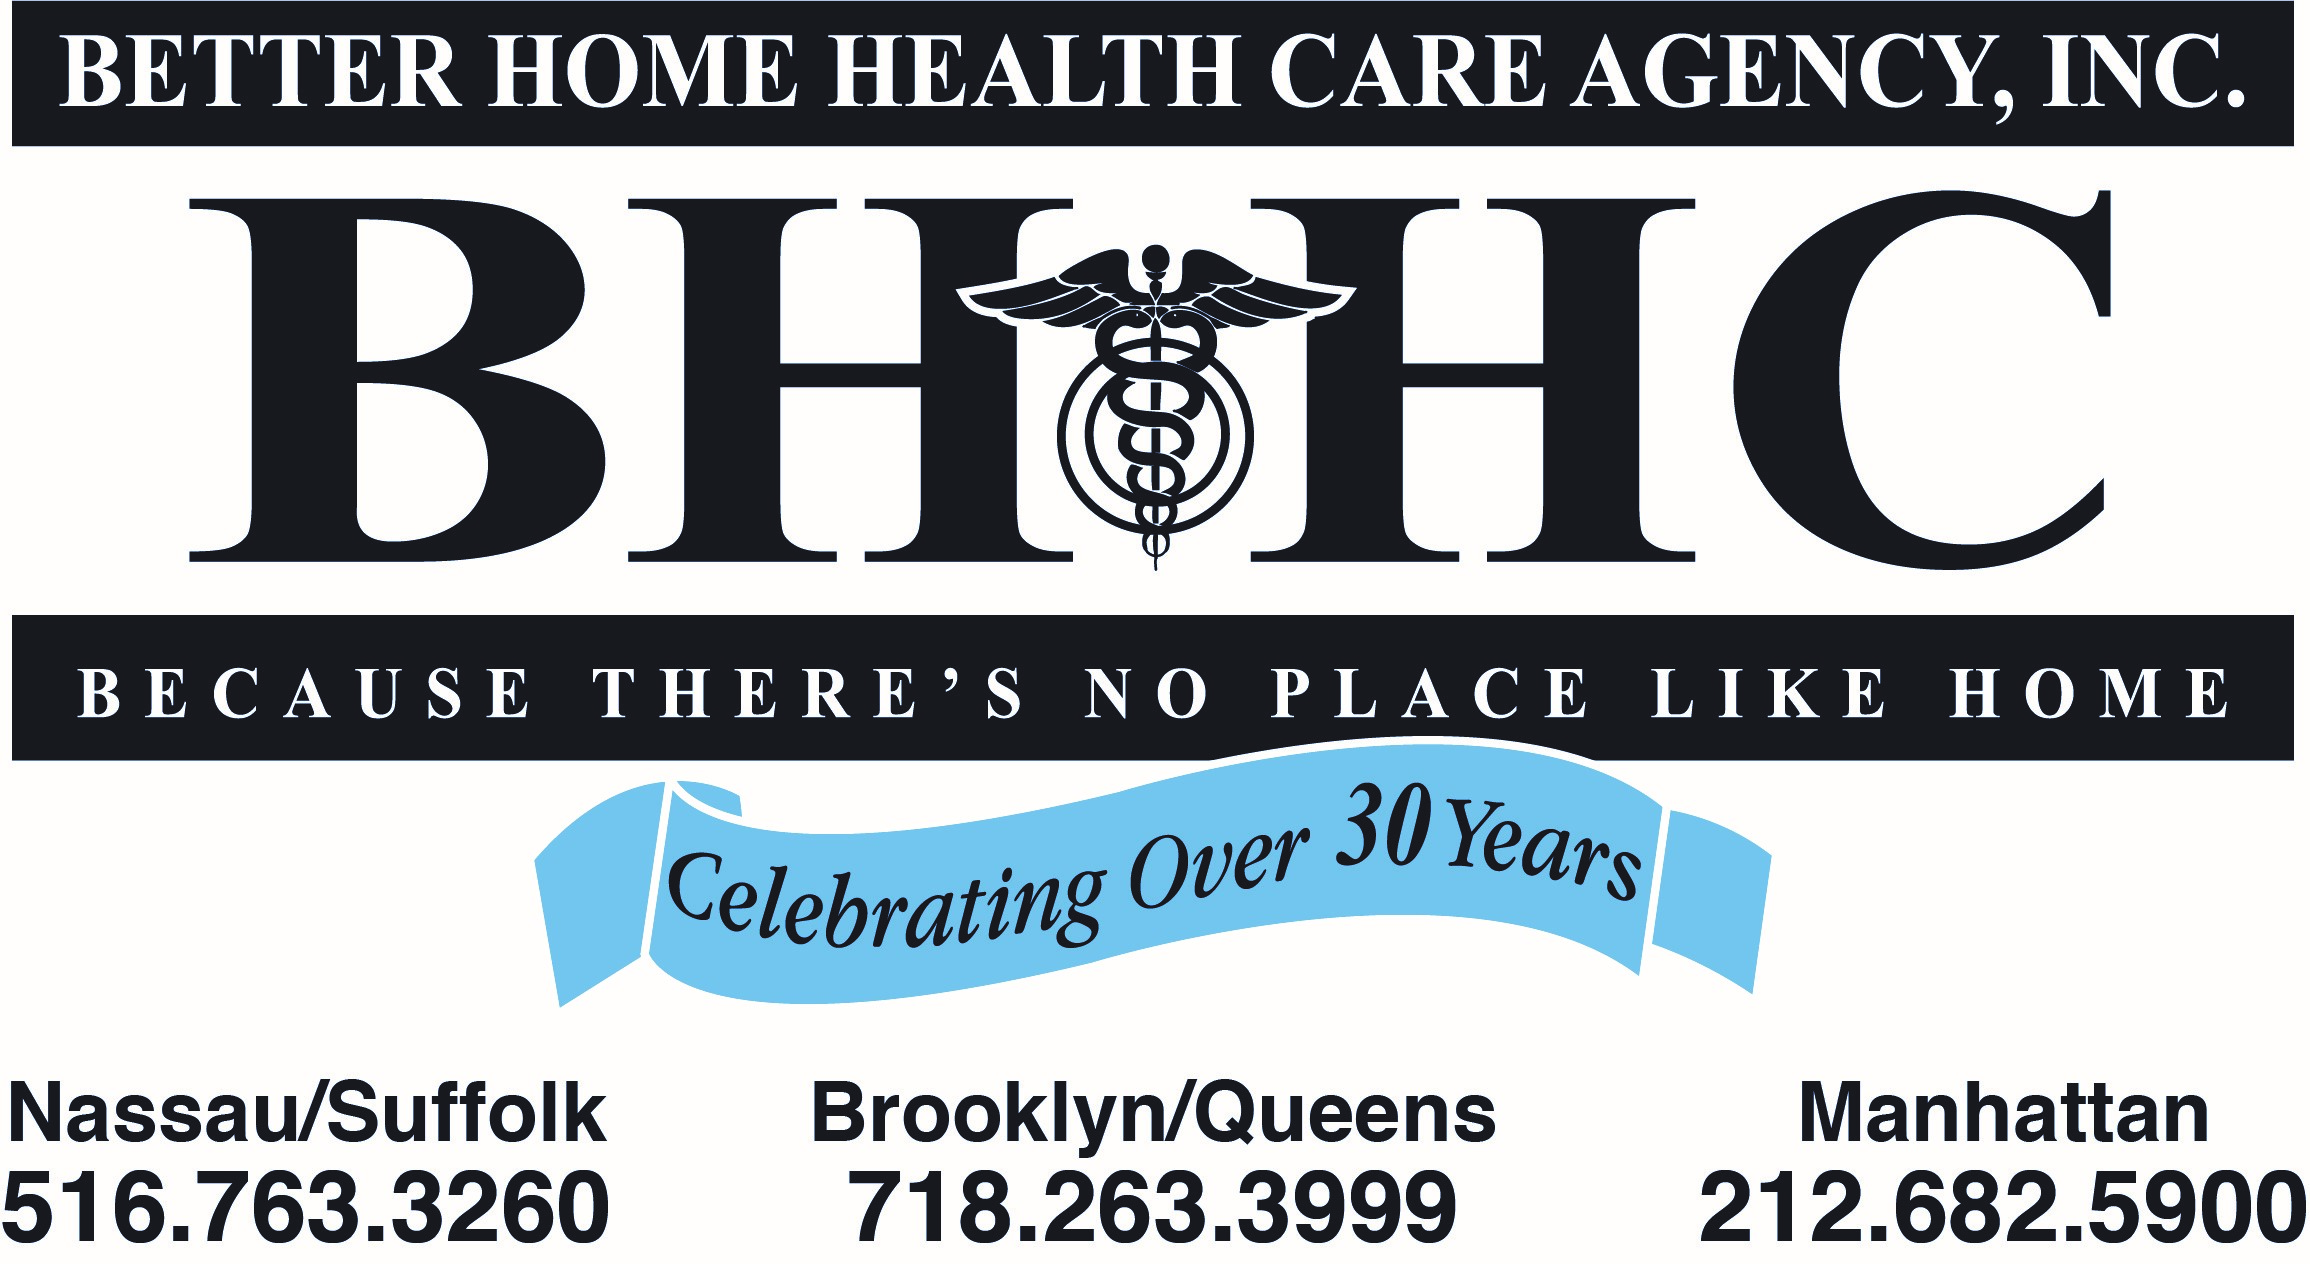 B. Better Home Health Care (Silver)